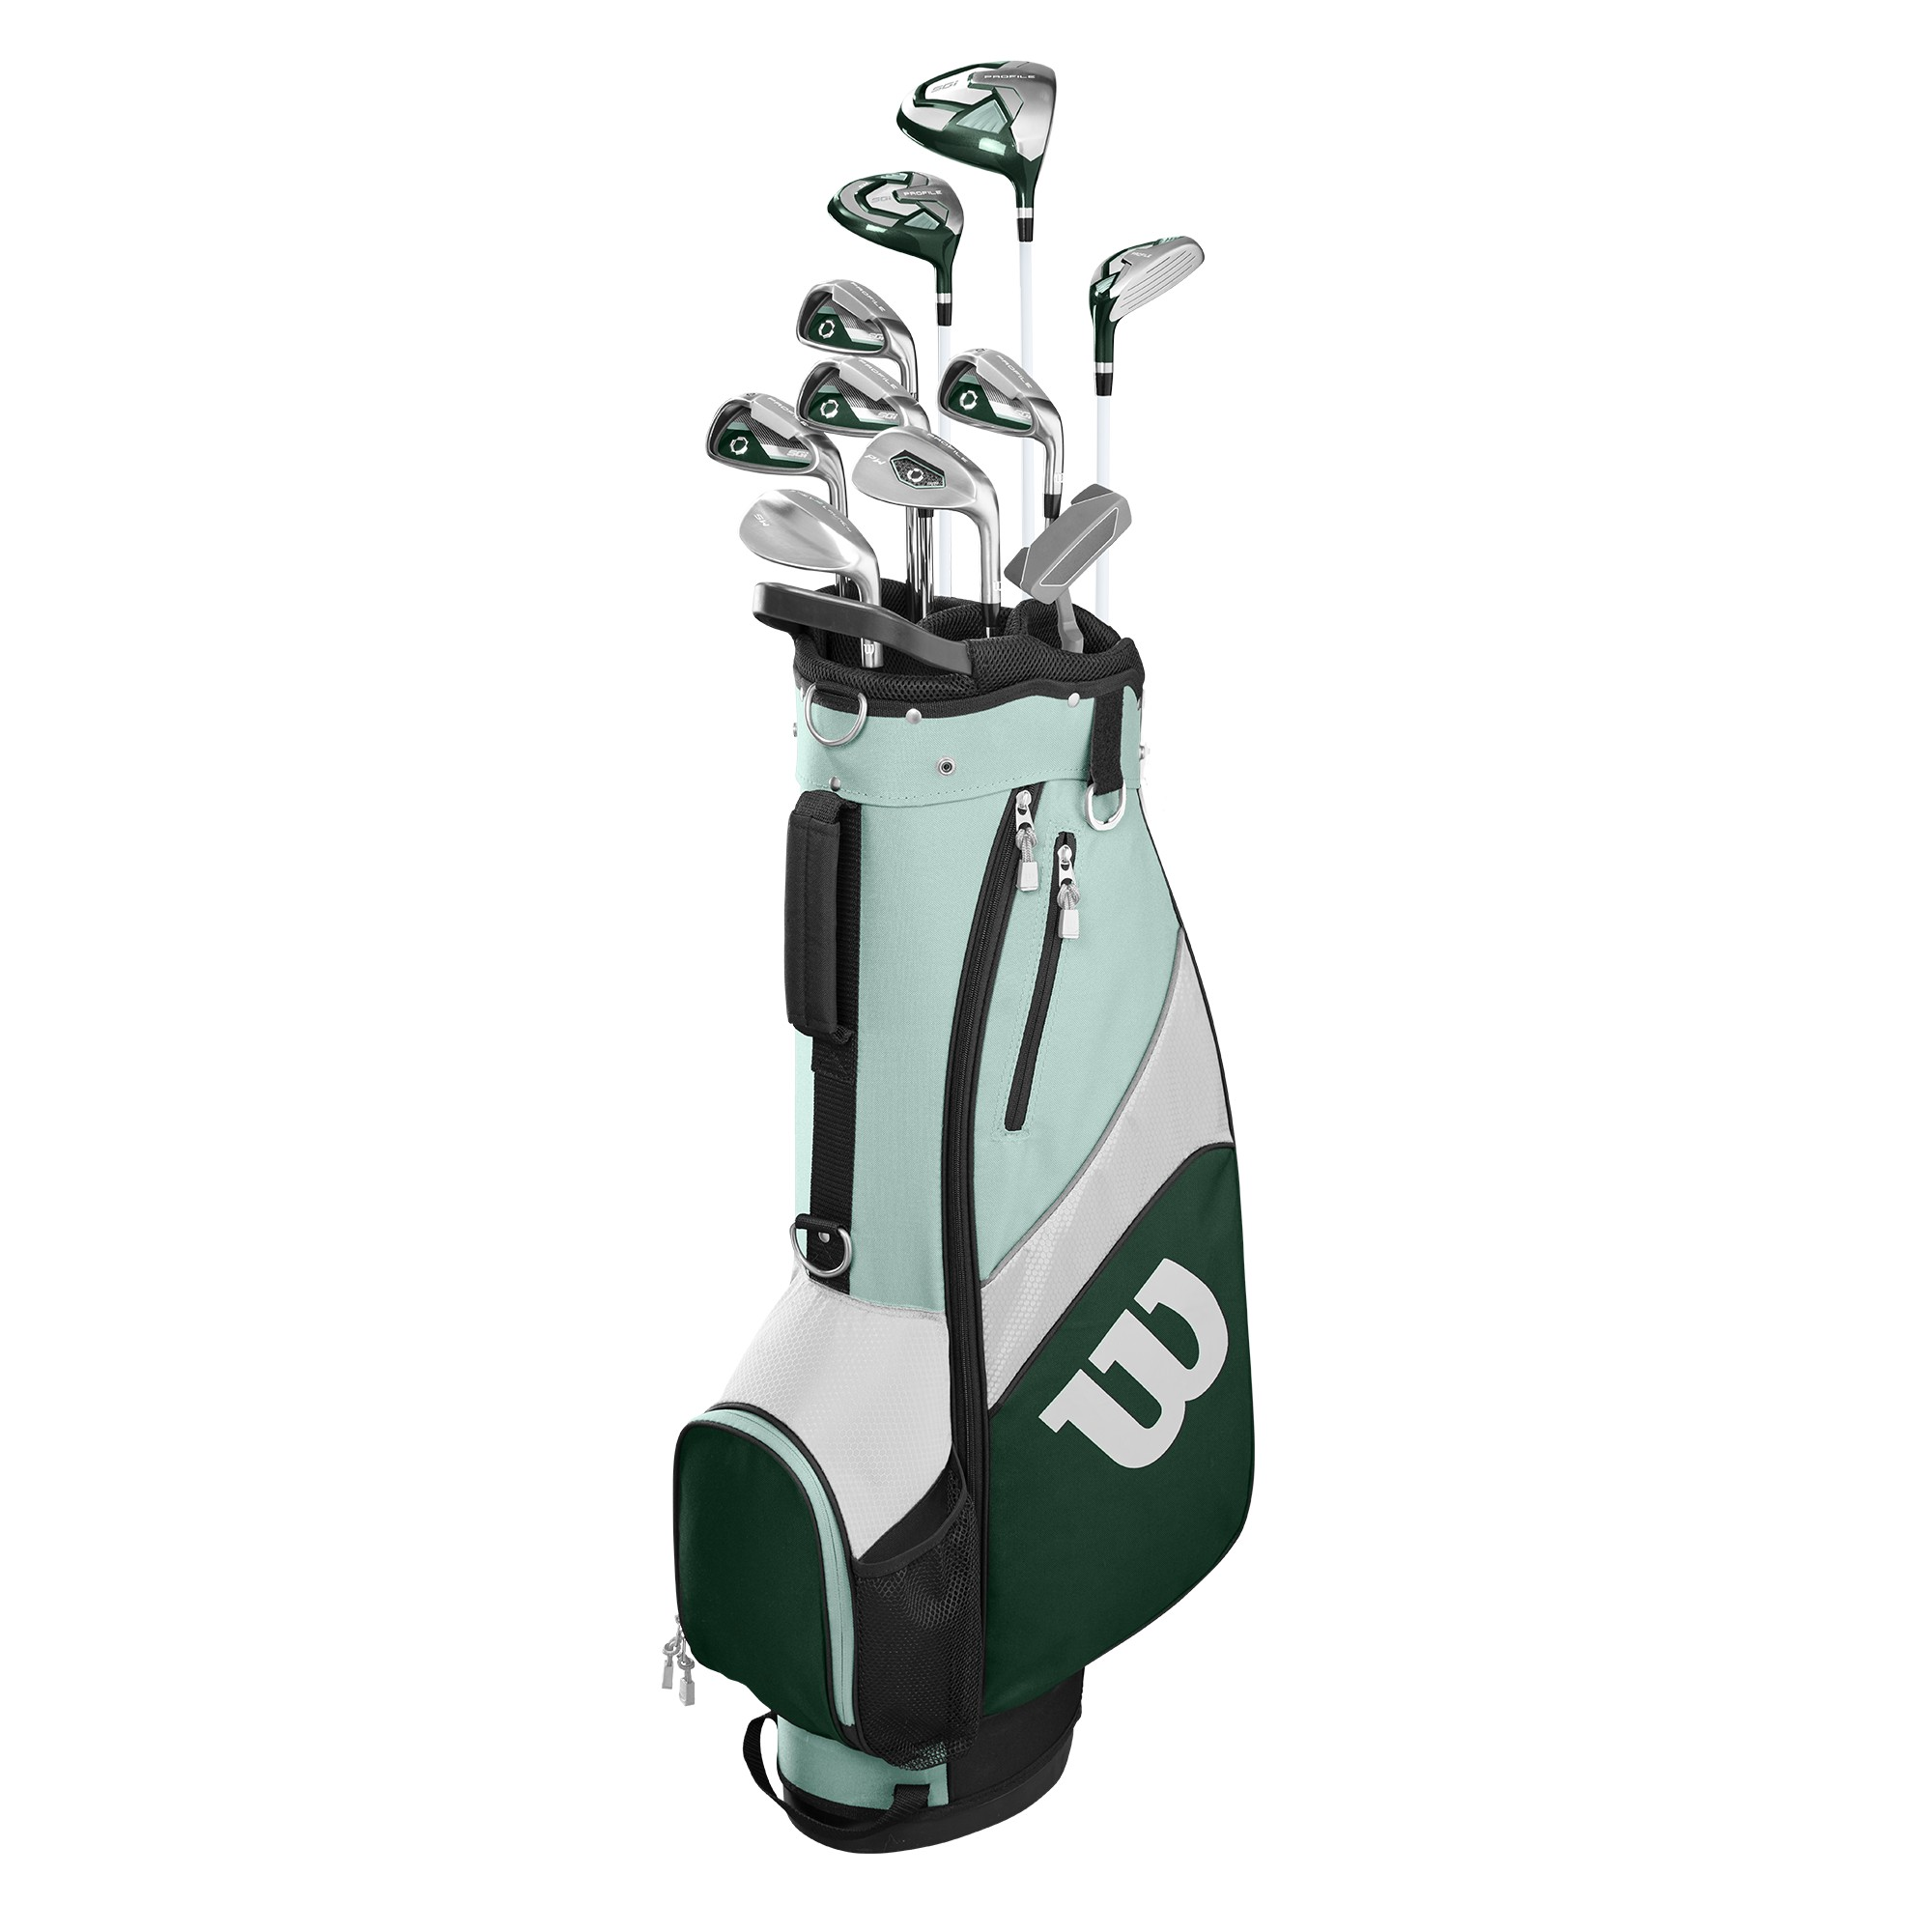 Wilson Golf Profile SGI Teal Women's Golf Complete Set w/ Cart Bag (Petite, Right Handed)